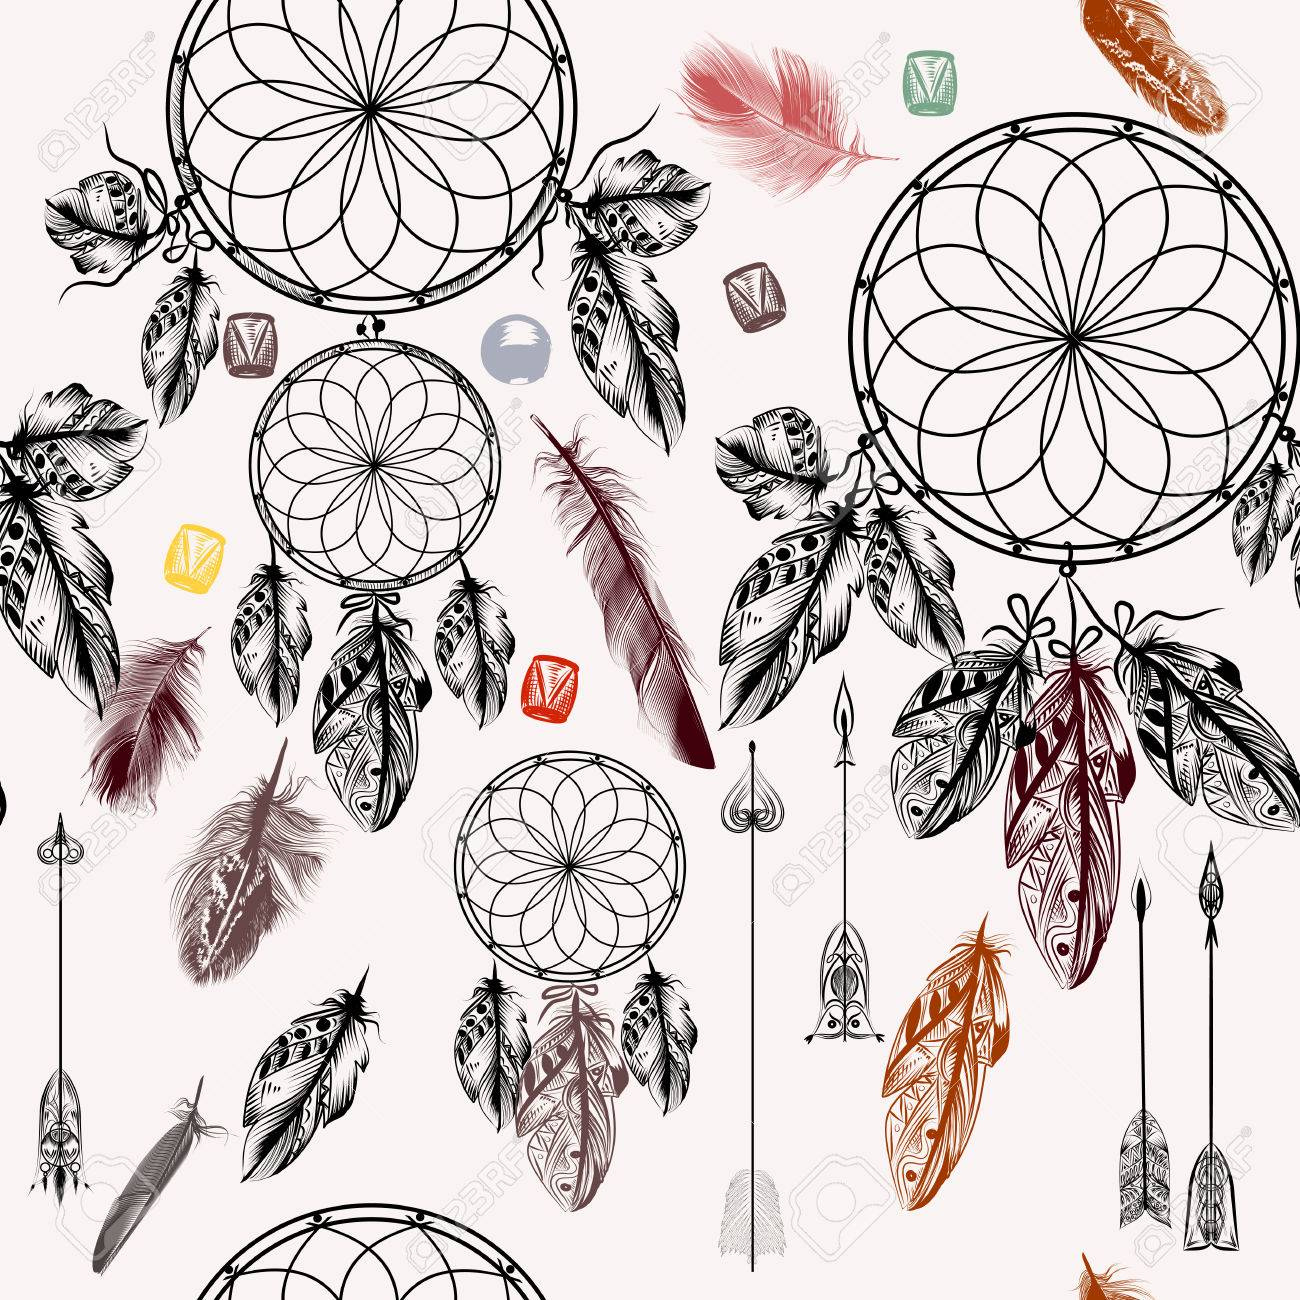 1300x1300 Seamless Vector Background With Hand Drawn Dream Catcher